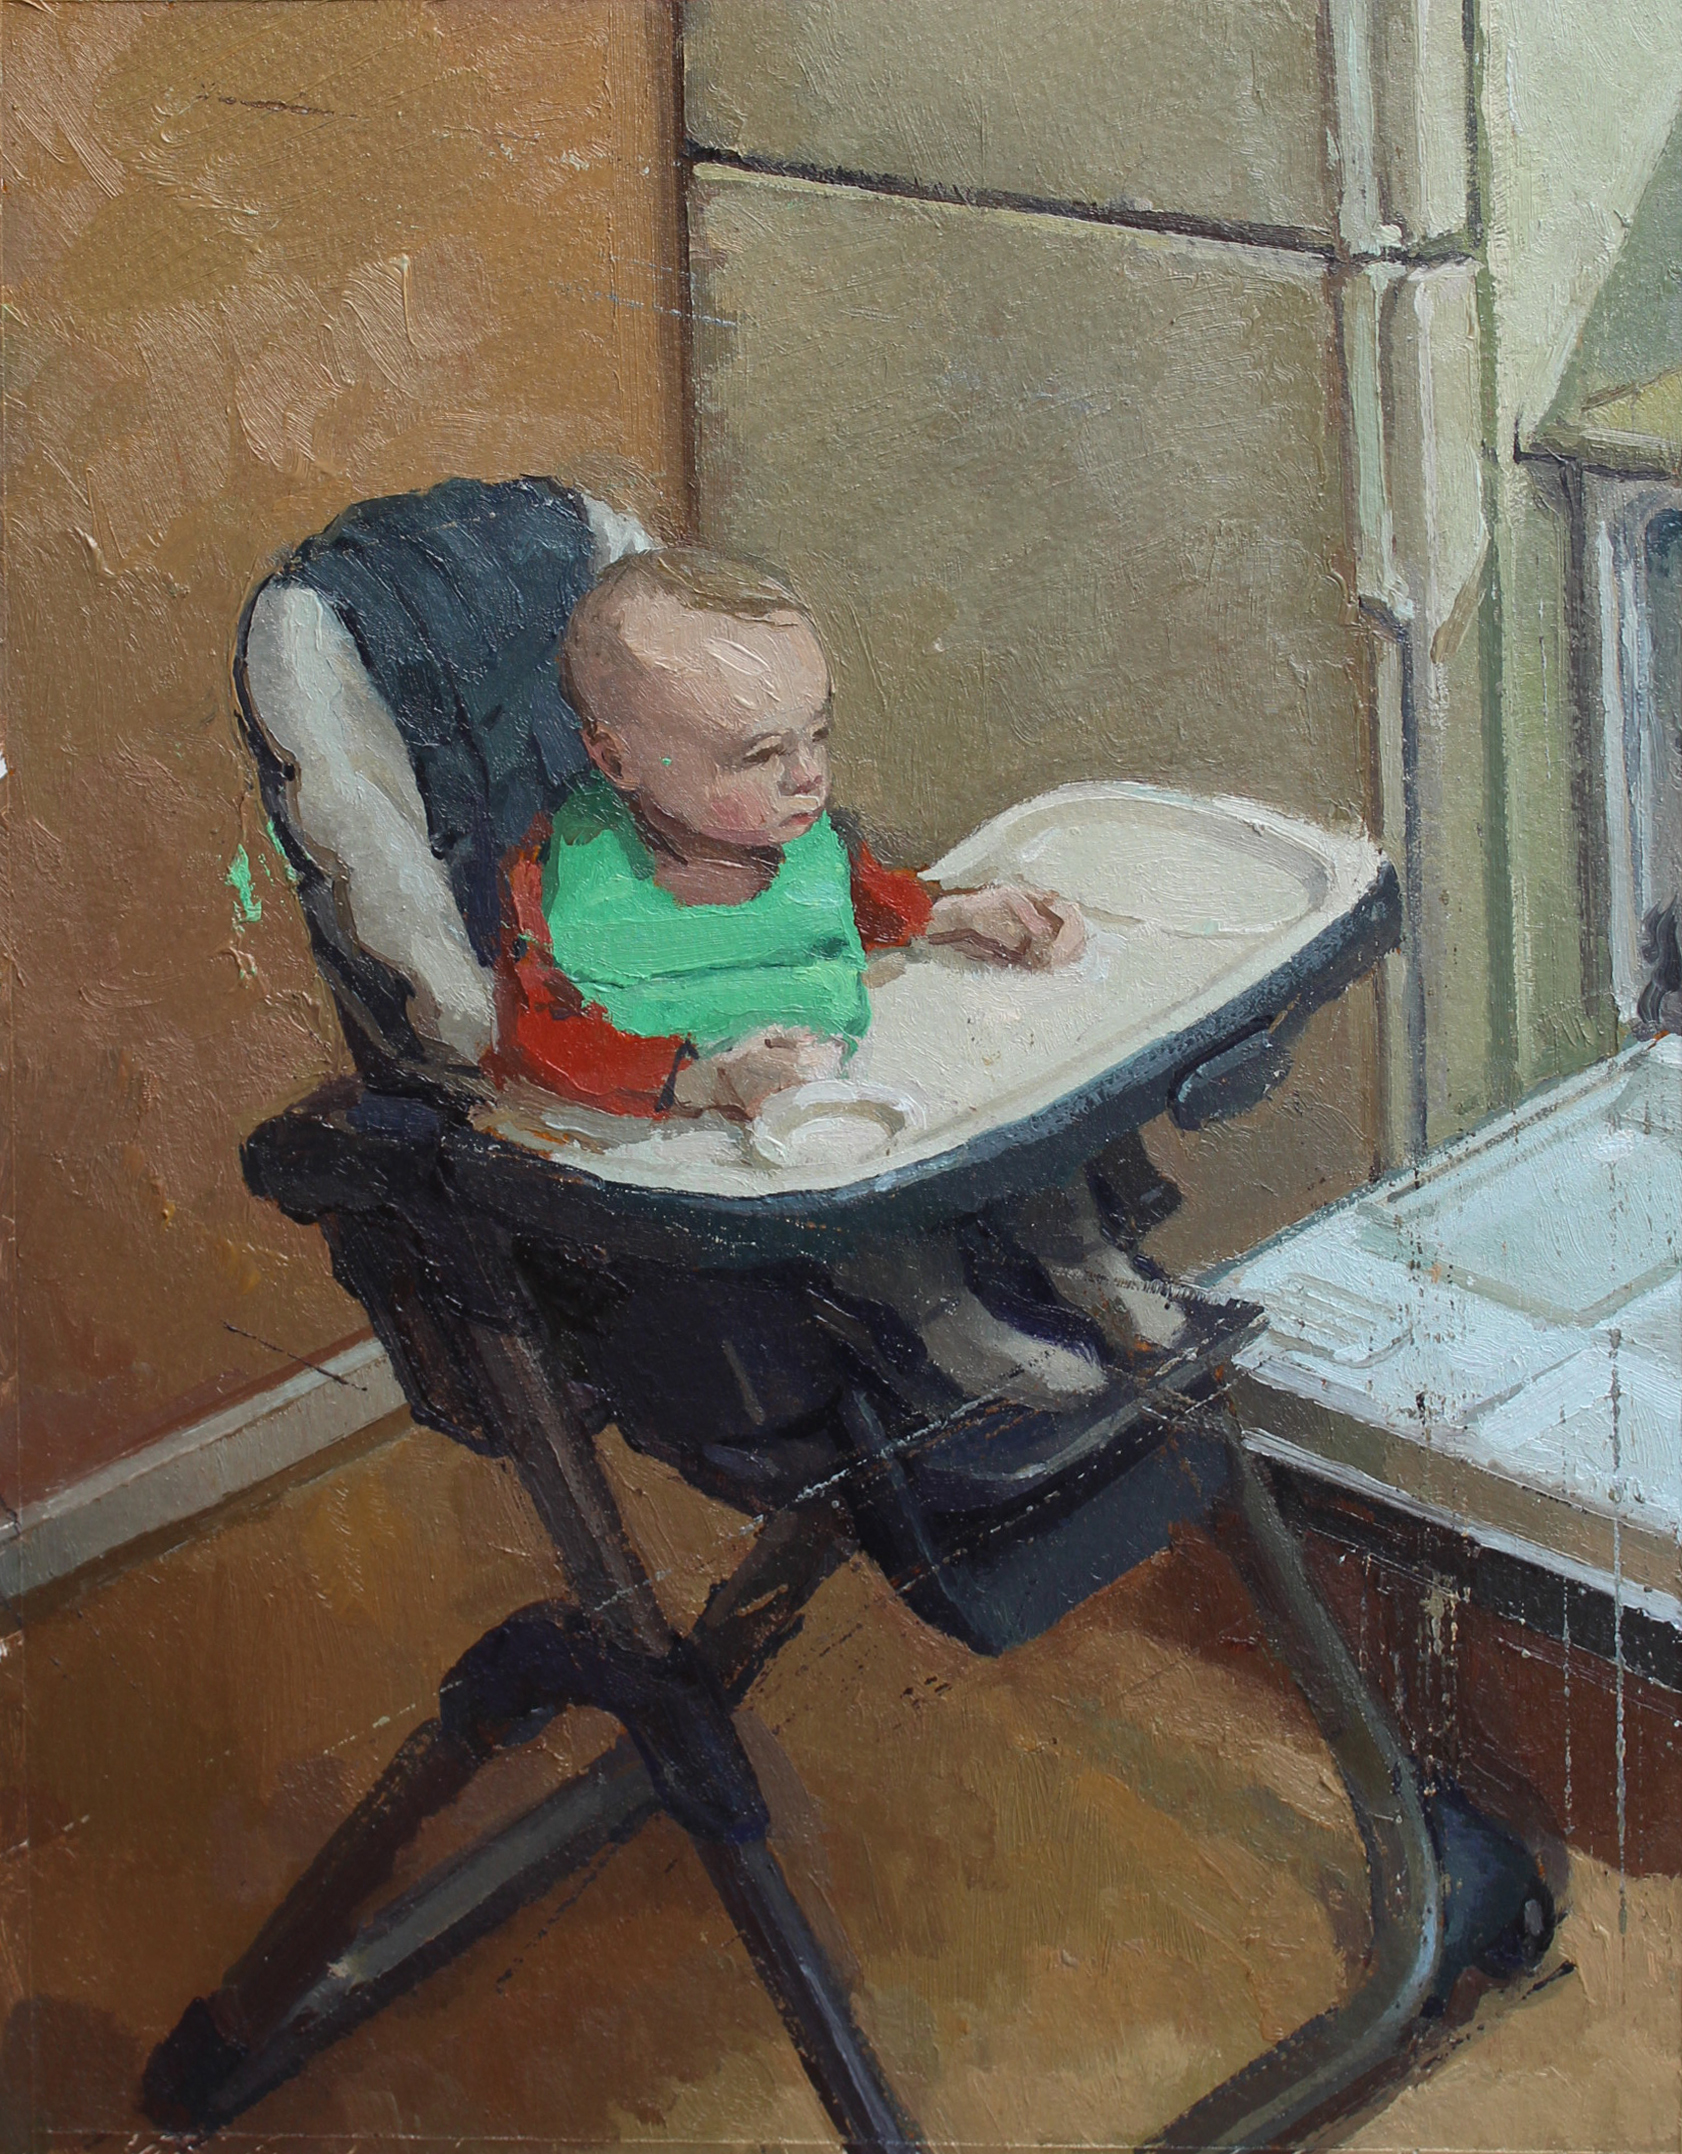 Child with a Green Bib, Oil on paper on panel, 10.5%22x8%22.jpg